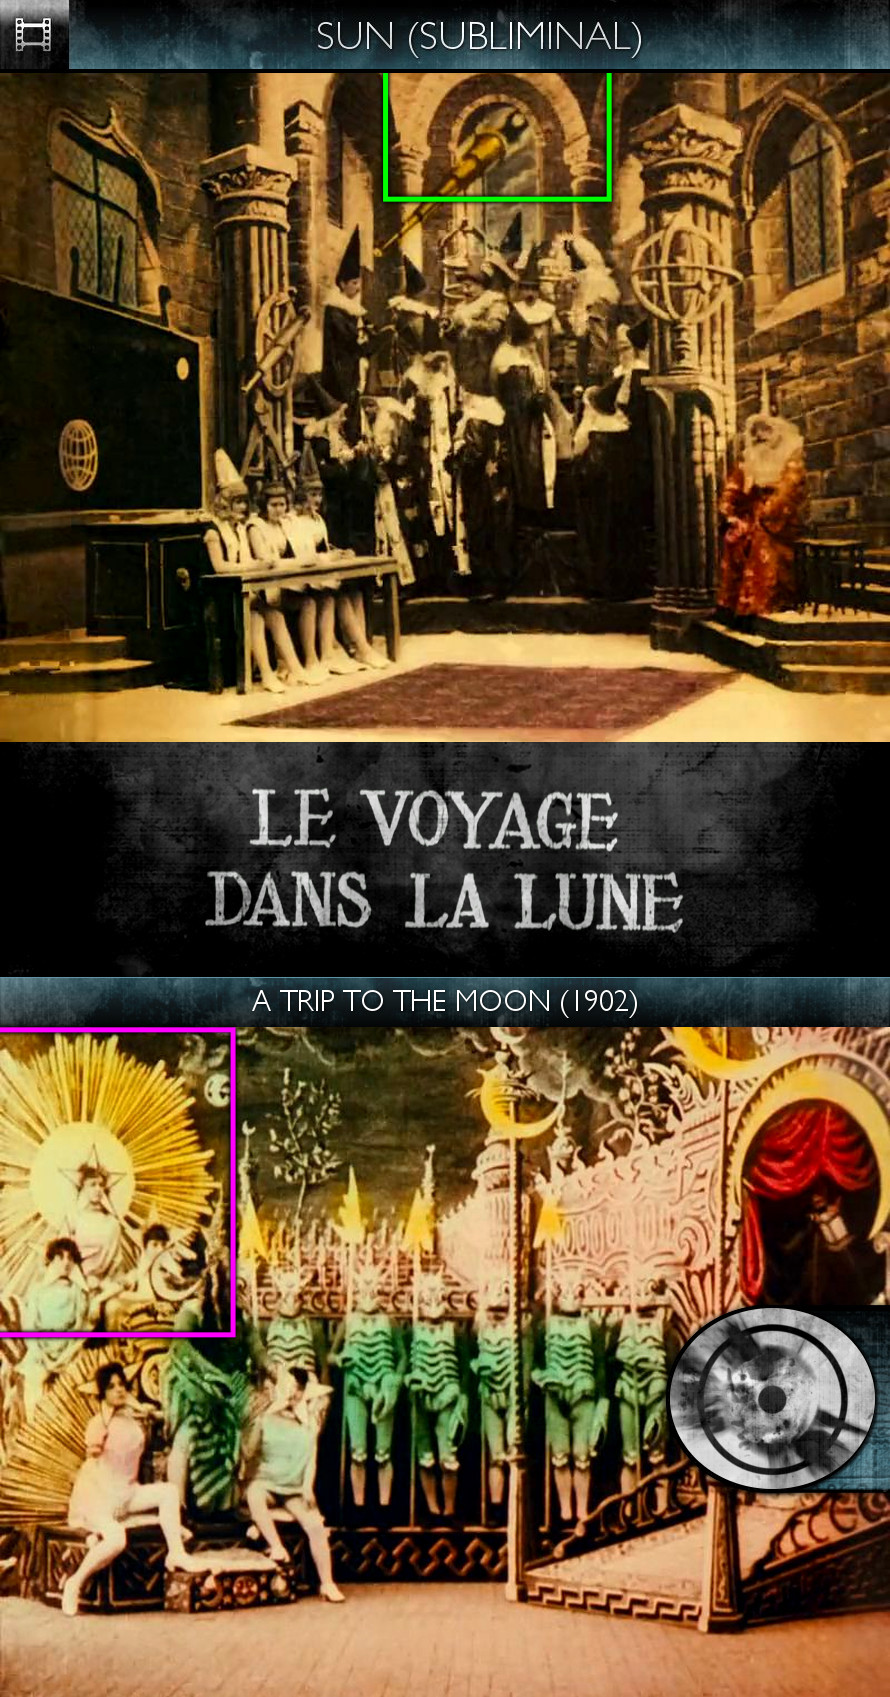 Voyage dans la Lune (A Trip to the Moon) (1902) - Sun/Solar - Subliminal